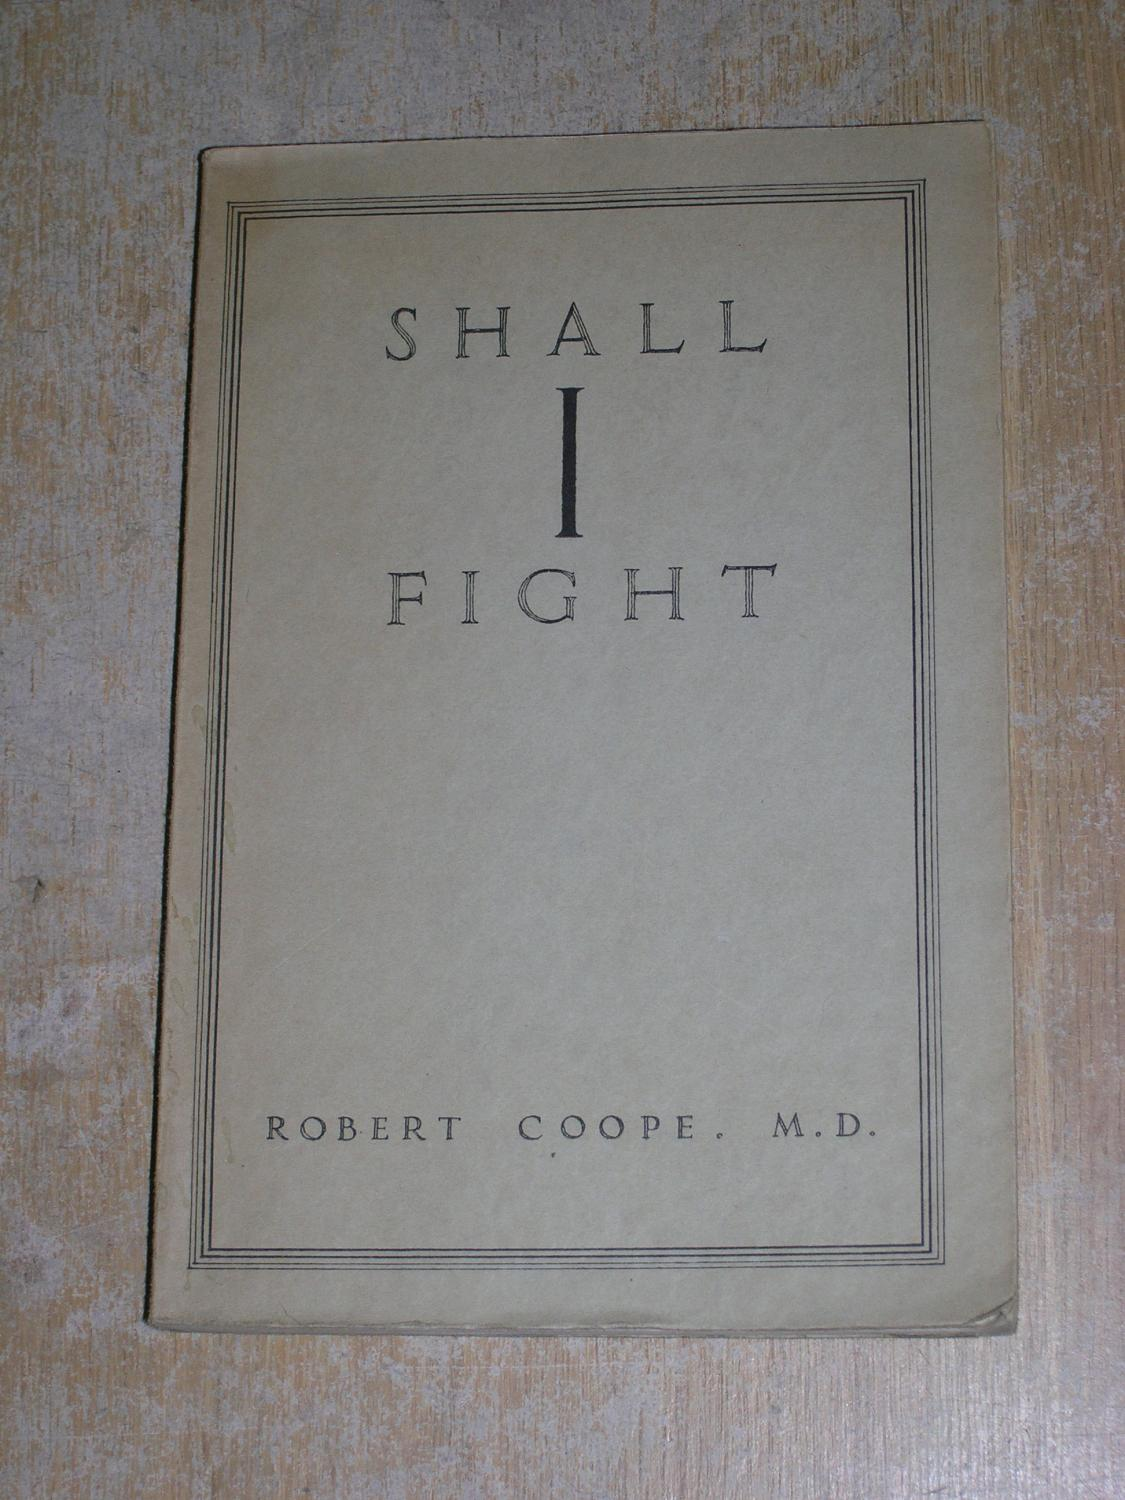 shall i fight an essay on war peace and the individual by robert shall i fight an essay on war peace and the individual robert coope m d